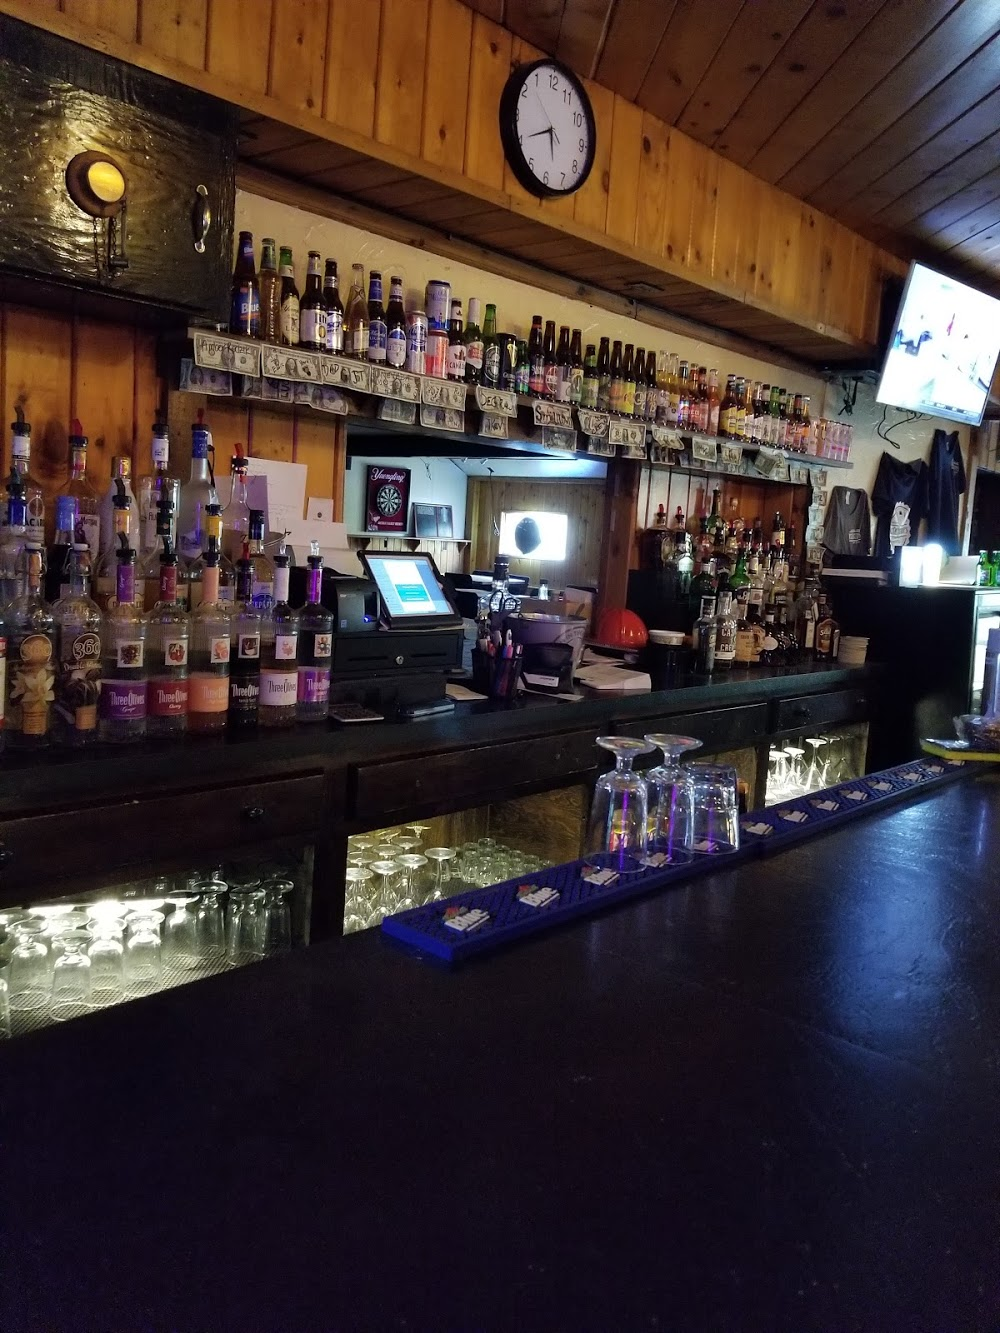 McGillicuddy's Bar & Grill